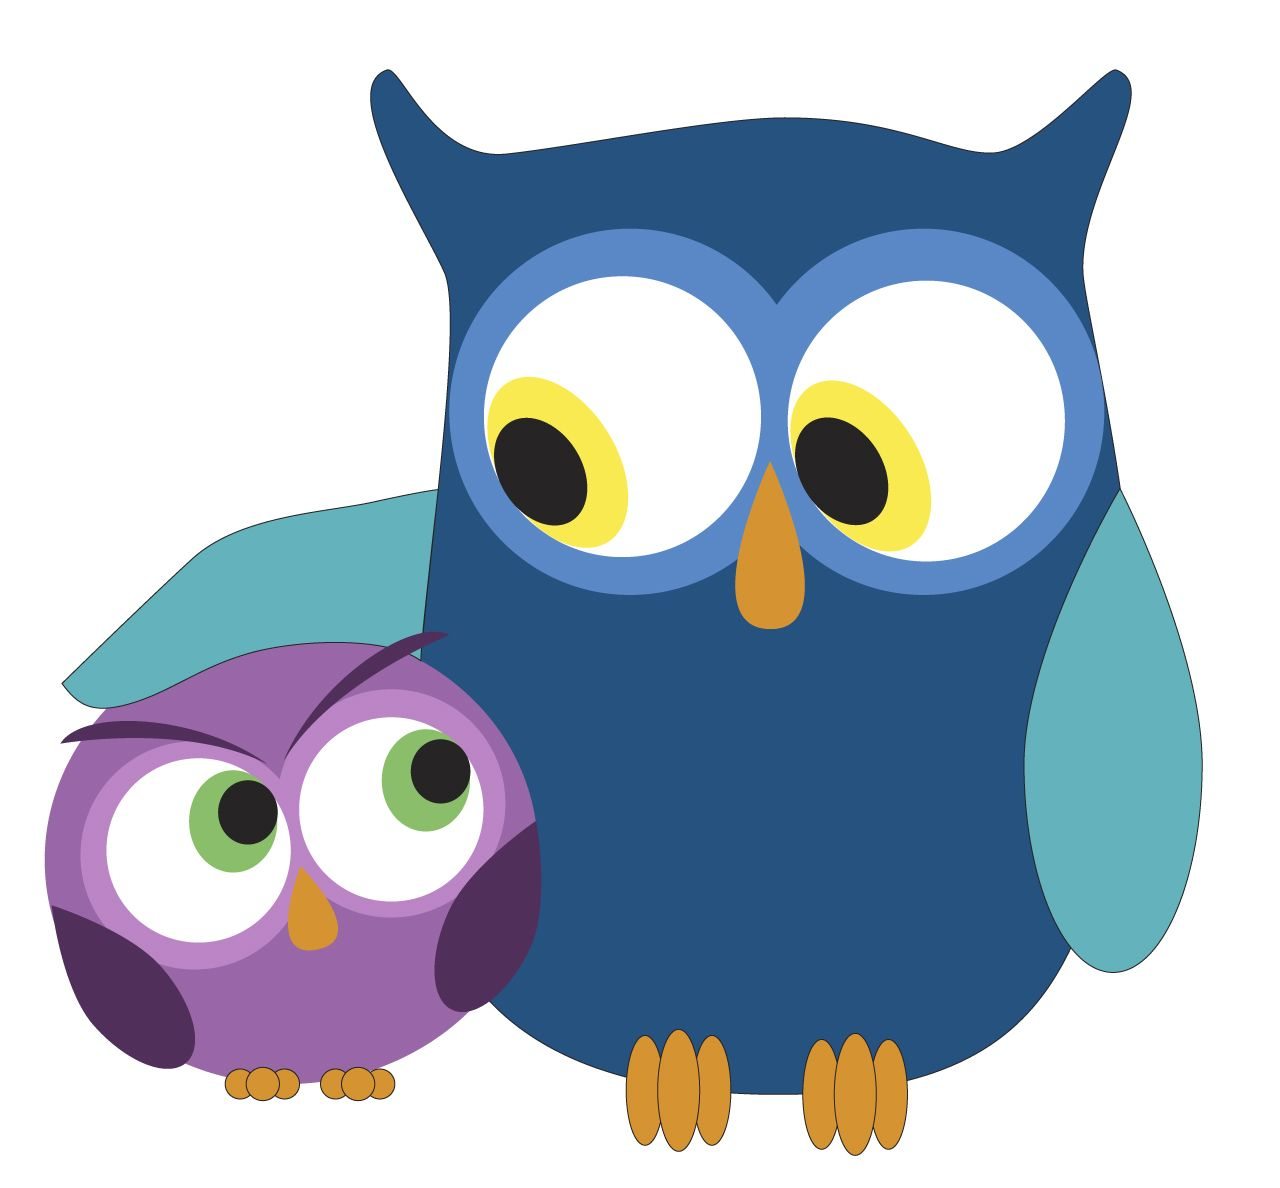 Owl clip art owlet. Day protect the owlets